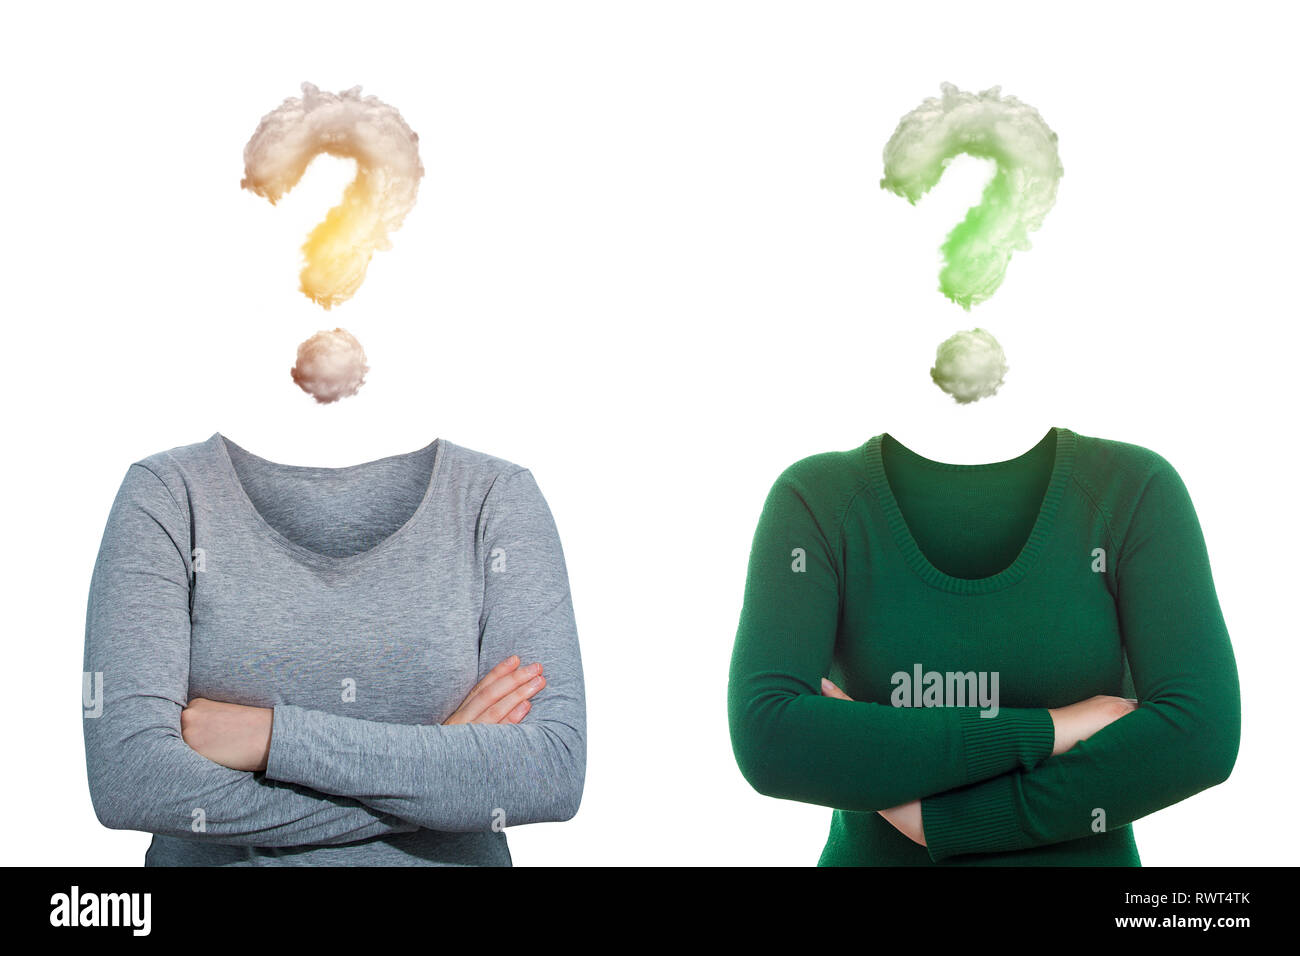 Surreal image as two women, arms crossed and invisible face has question mark clouds instead of head isolated on white. Social mask for hiding identit - Stock Image